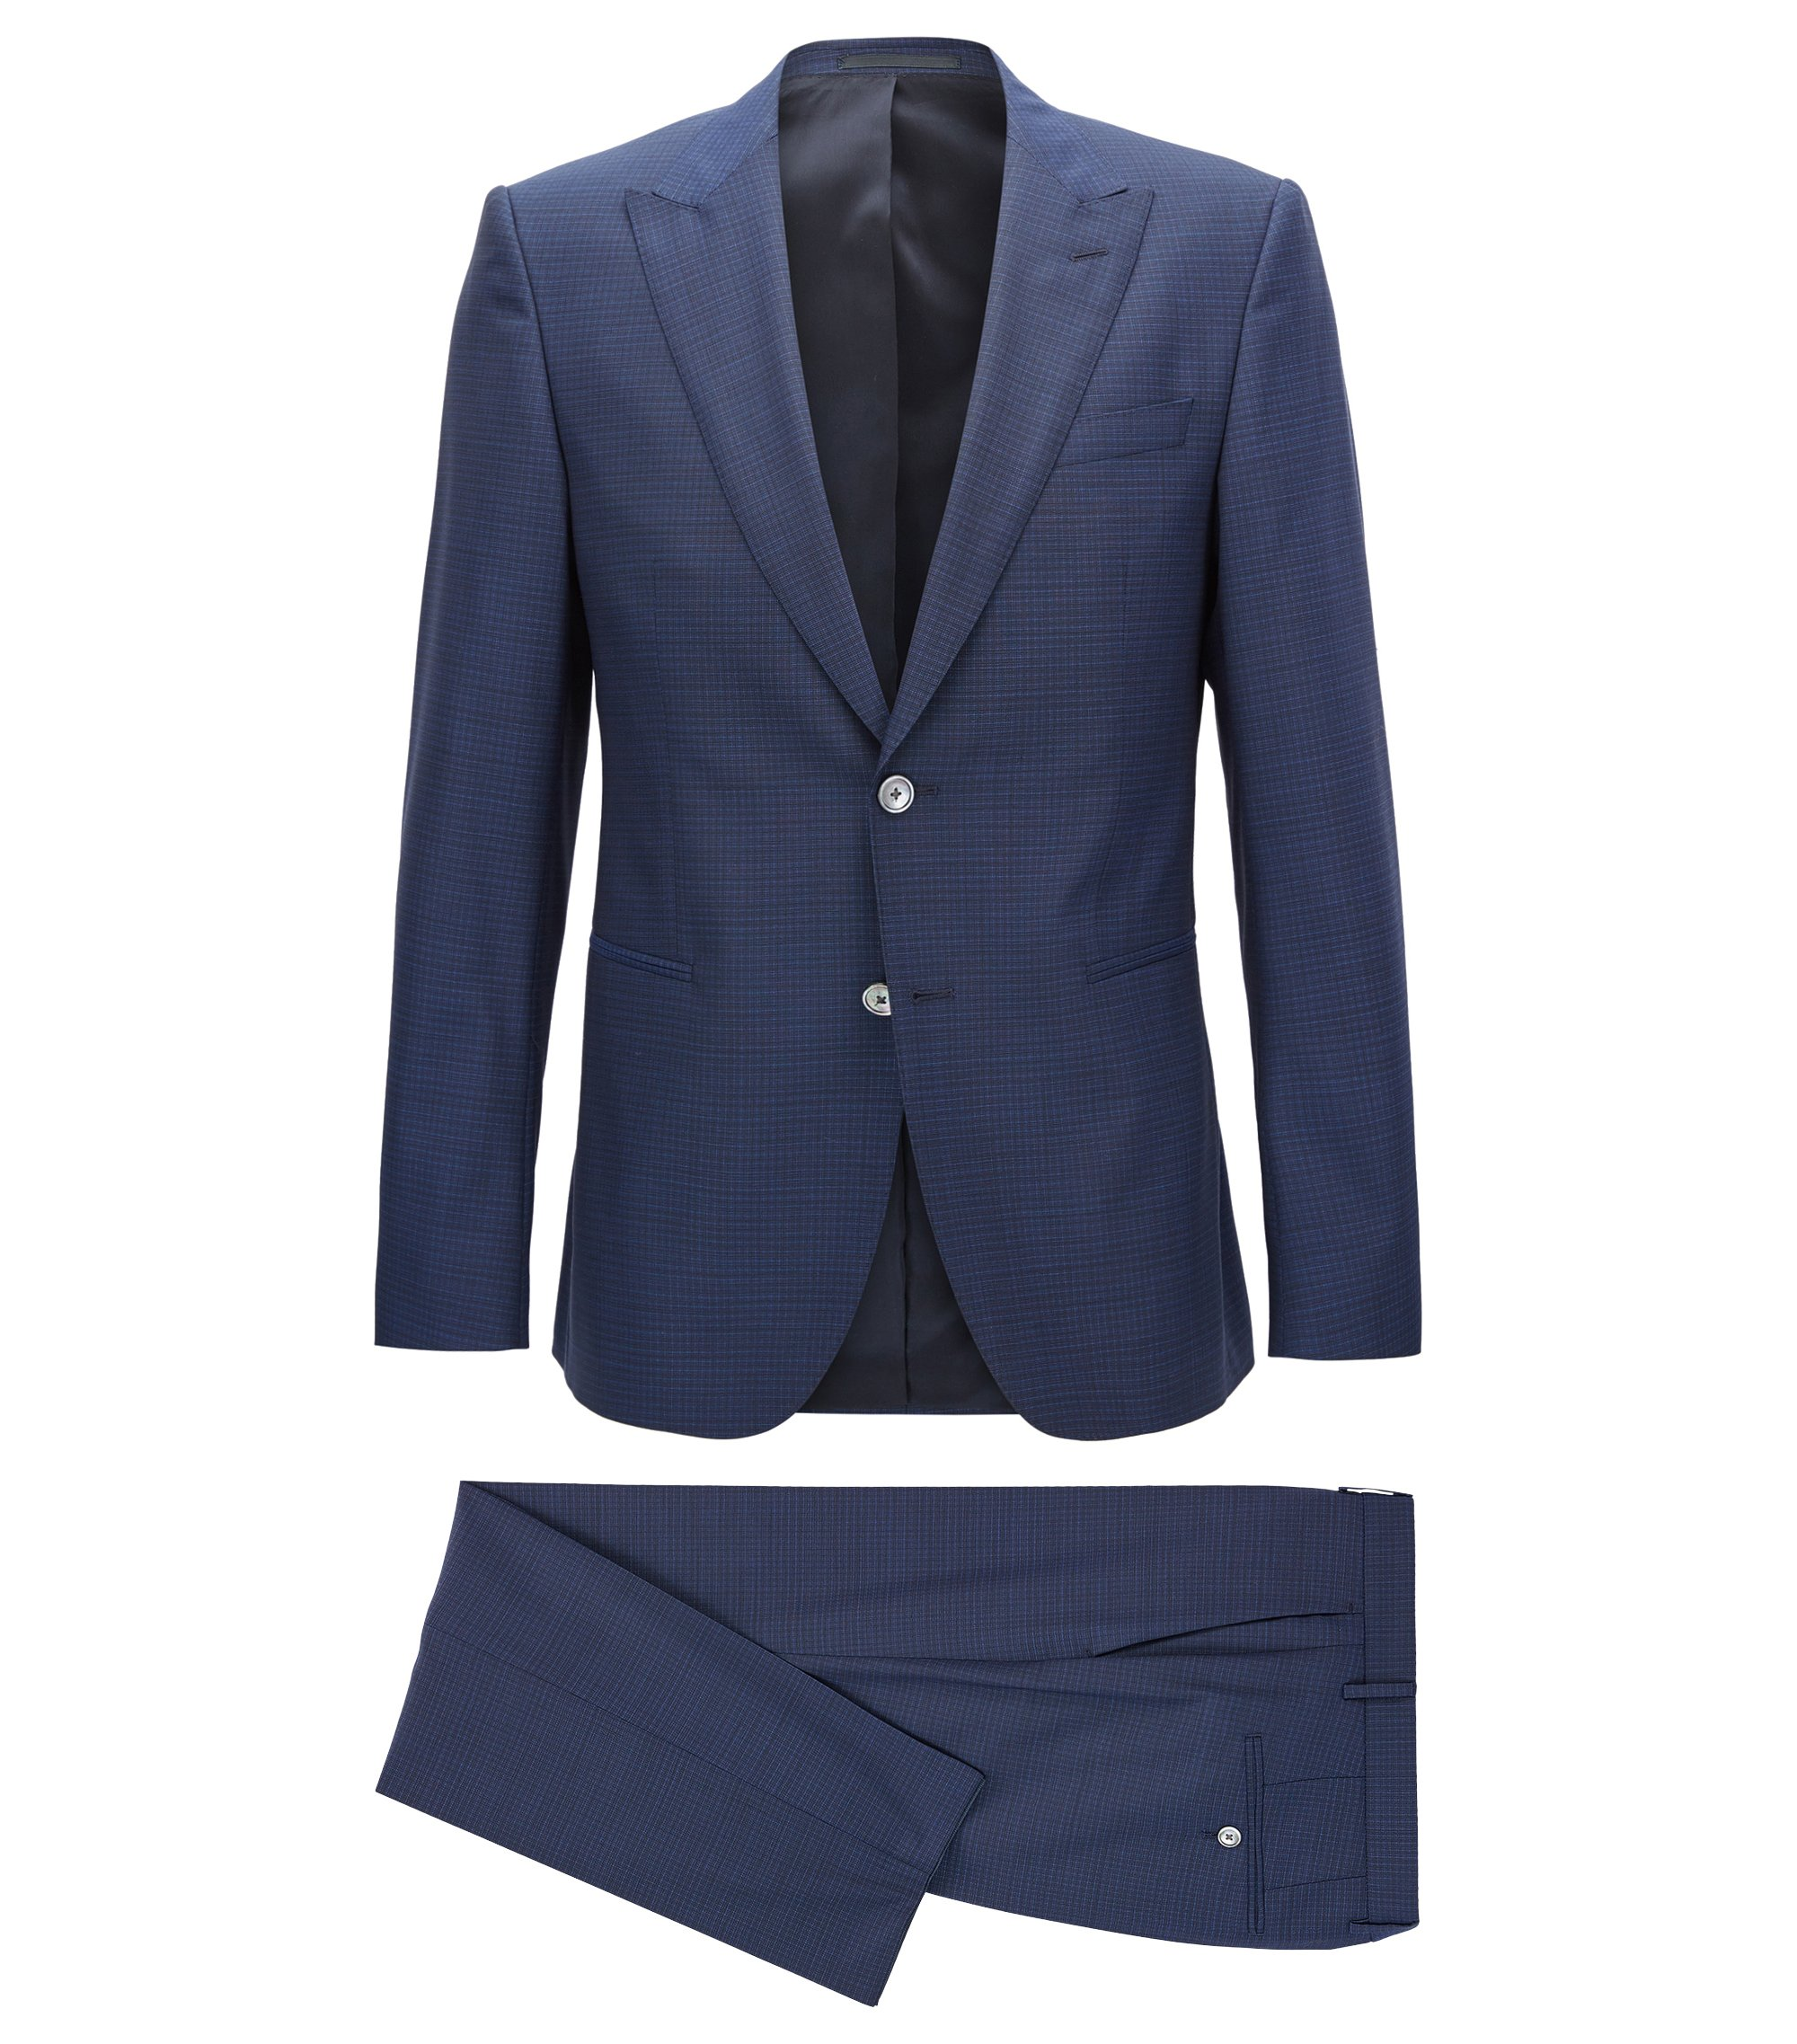 Checked Virgin Wool Suit, Slim Fit | Novid/Bristow, Open Blue